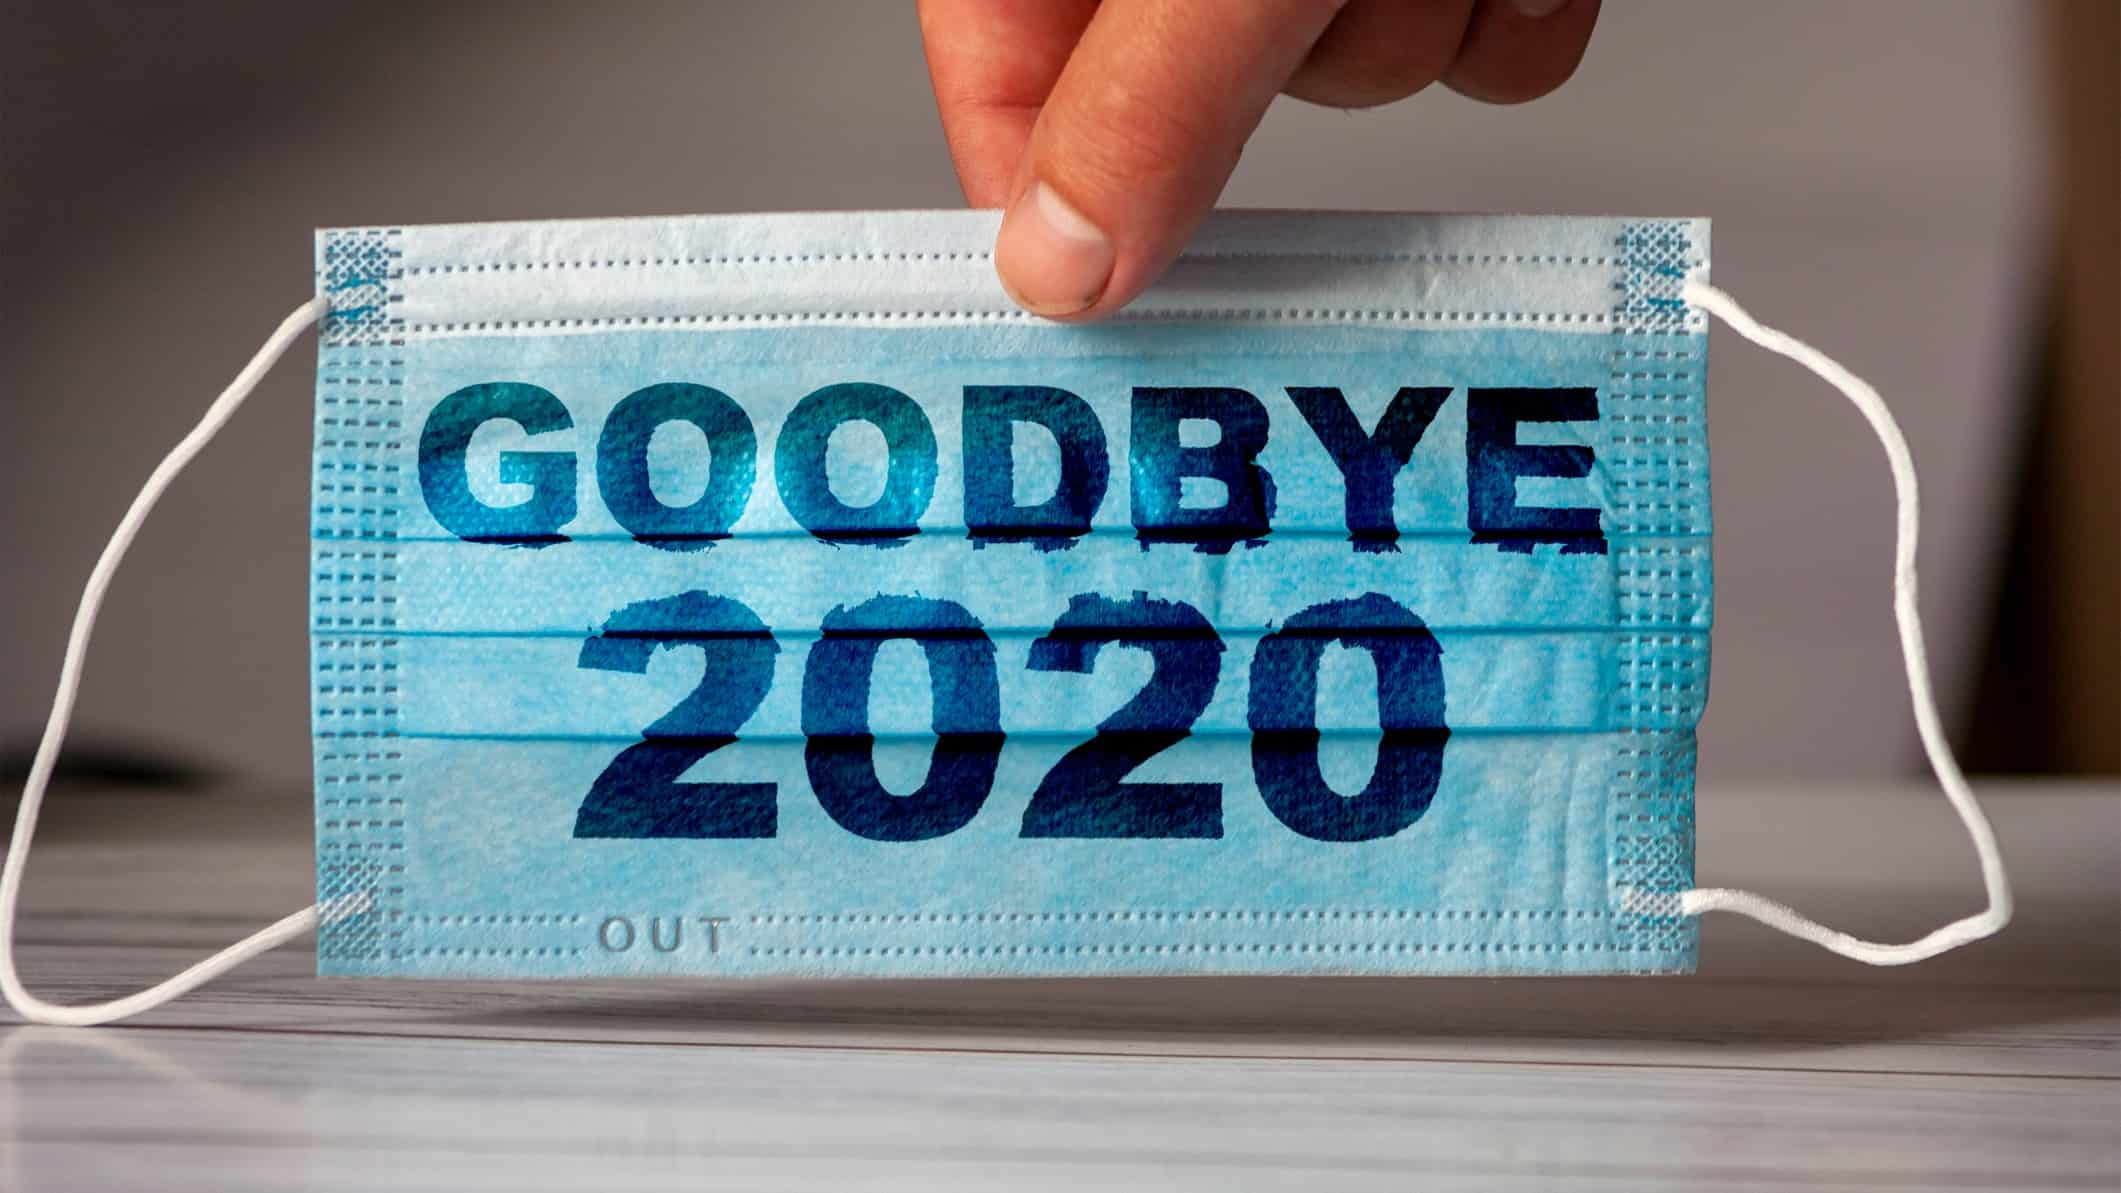 Blue face mask with 'Goodbye 2020' written on it